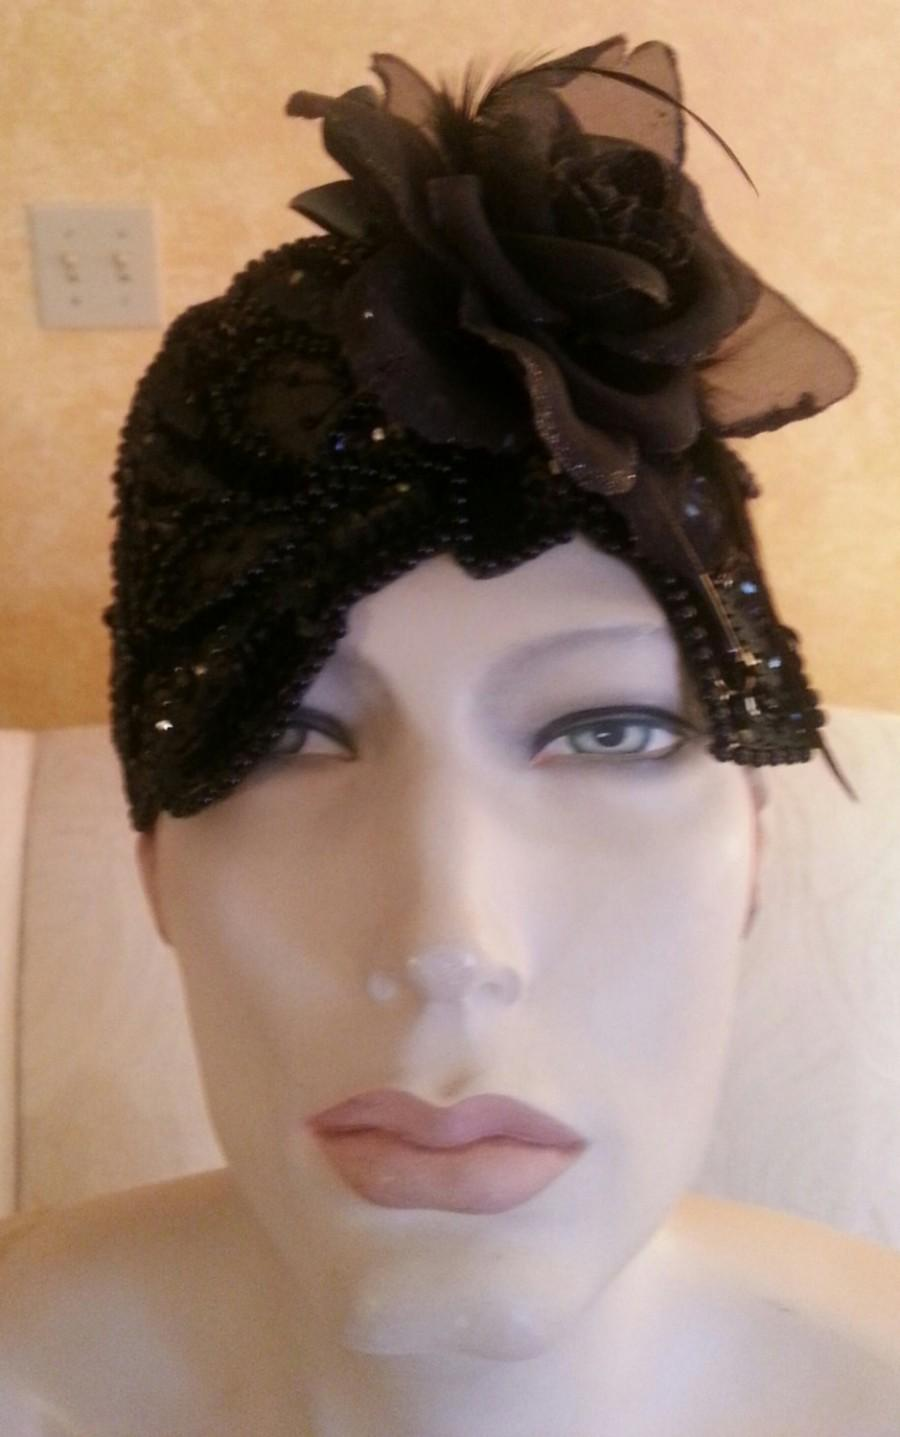 زفاف - Elegant Gatsby Roaring Twenties Style Black Beaded Bridal Headpiece Costume Theatrical Burlesque Party Club Dance By Sebrina Love